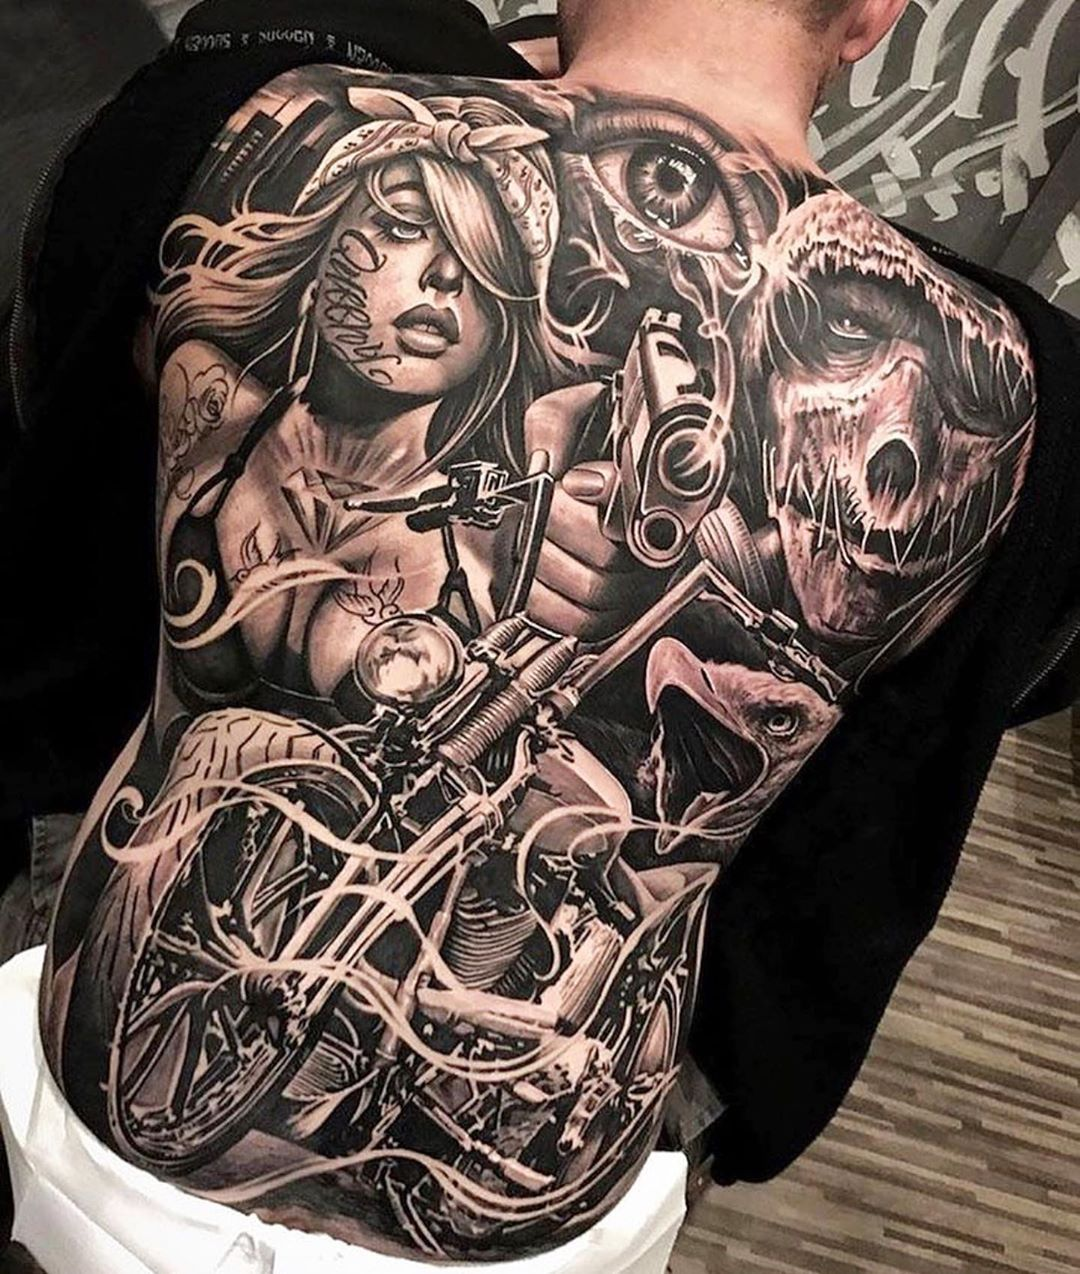 101 Awesome Back Tattoo Designs You Need To See in 2020  Full back  tattoos Back tattoo Chicano tattoos